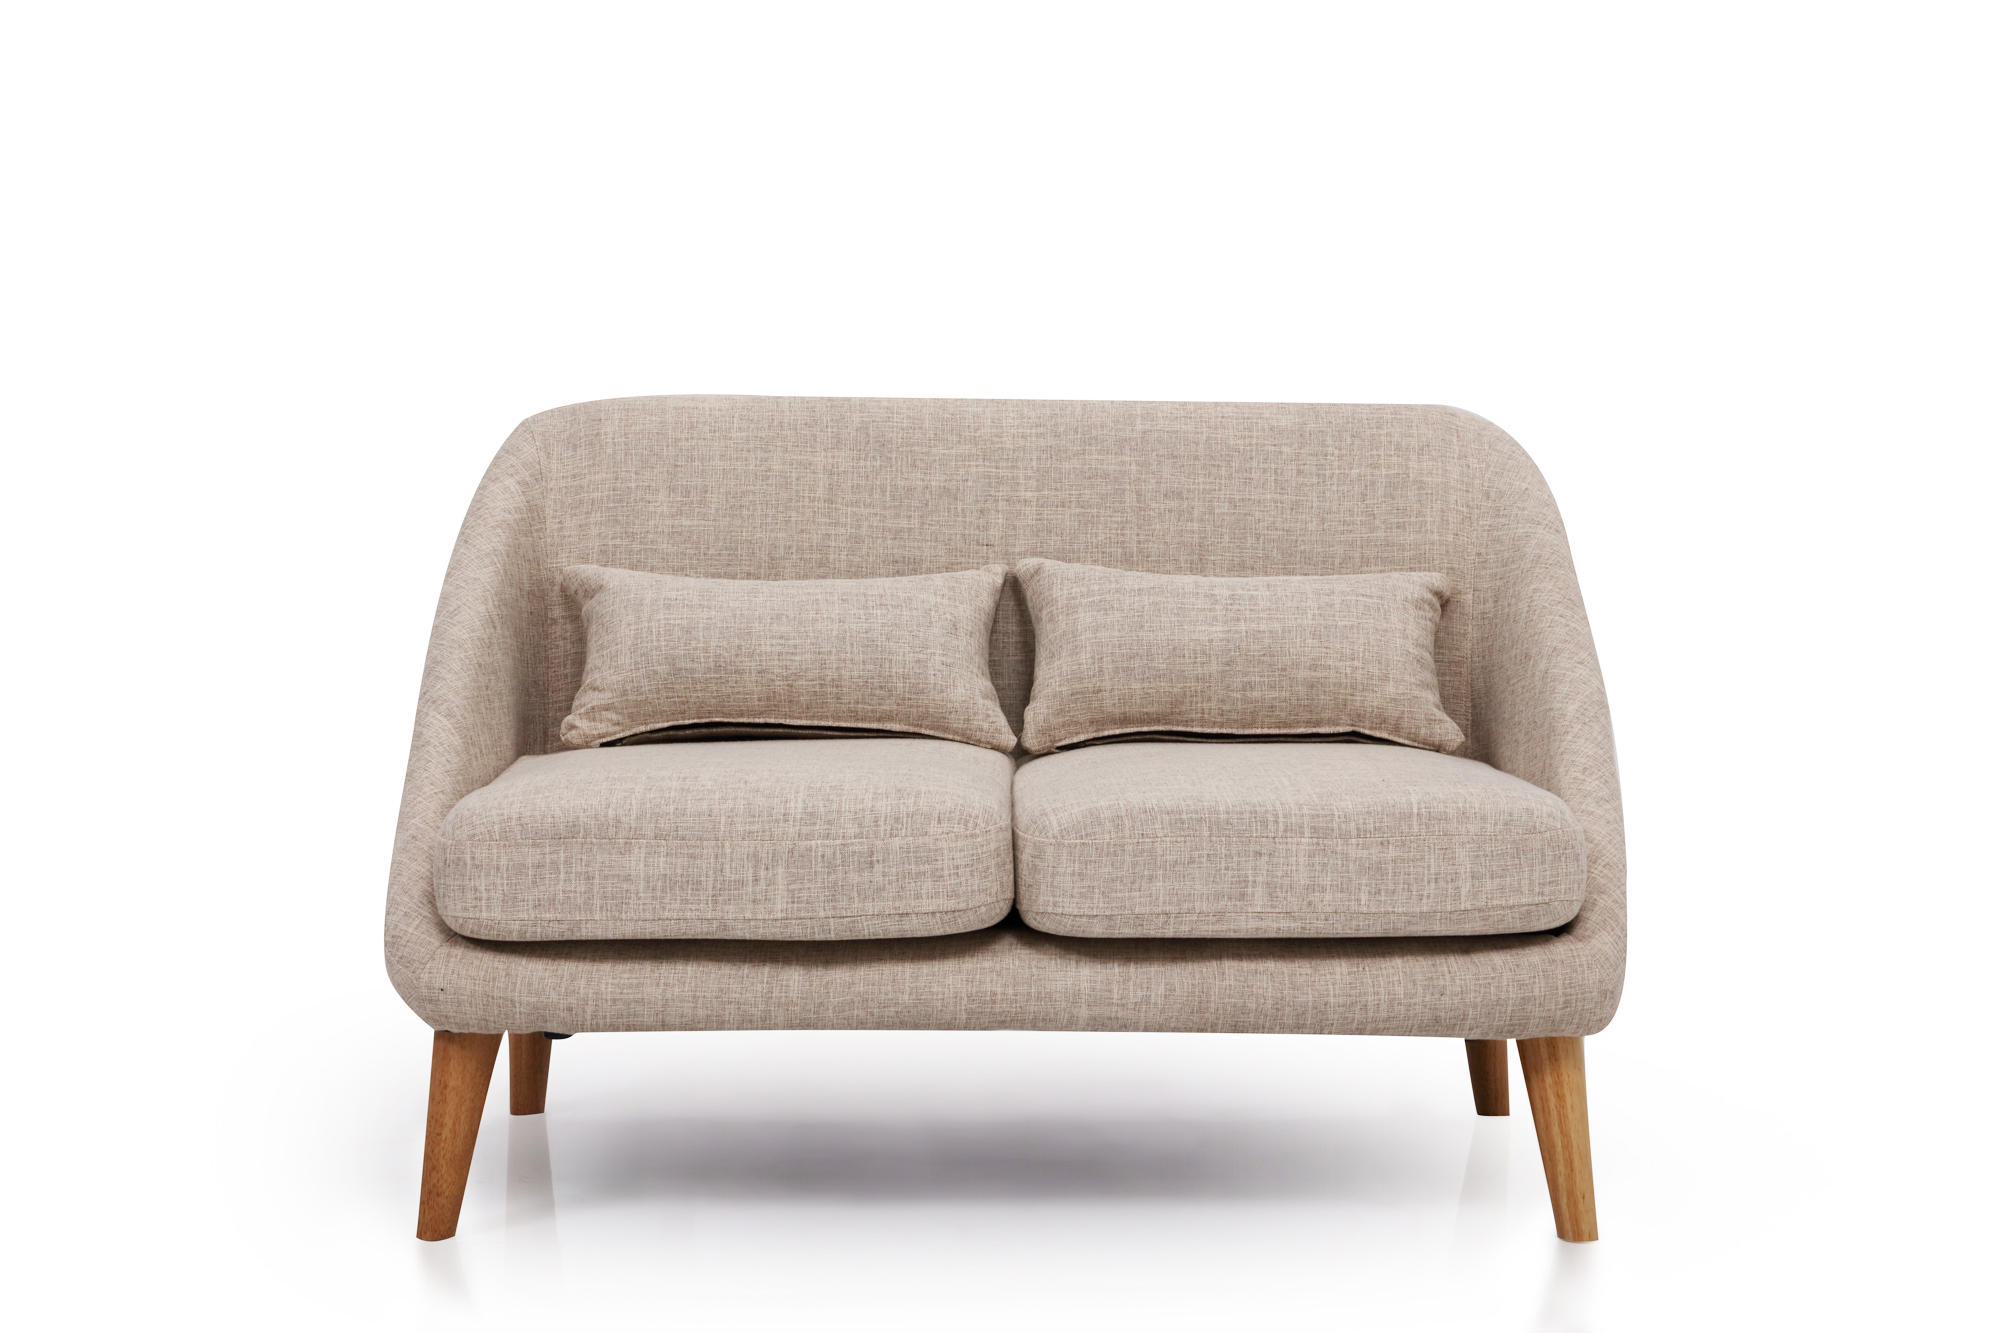 Swell Grey Fabric Two Seater Sofa Ideal For Small Space Living Interior Design Ideas Clesiryabchikinfo